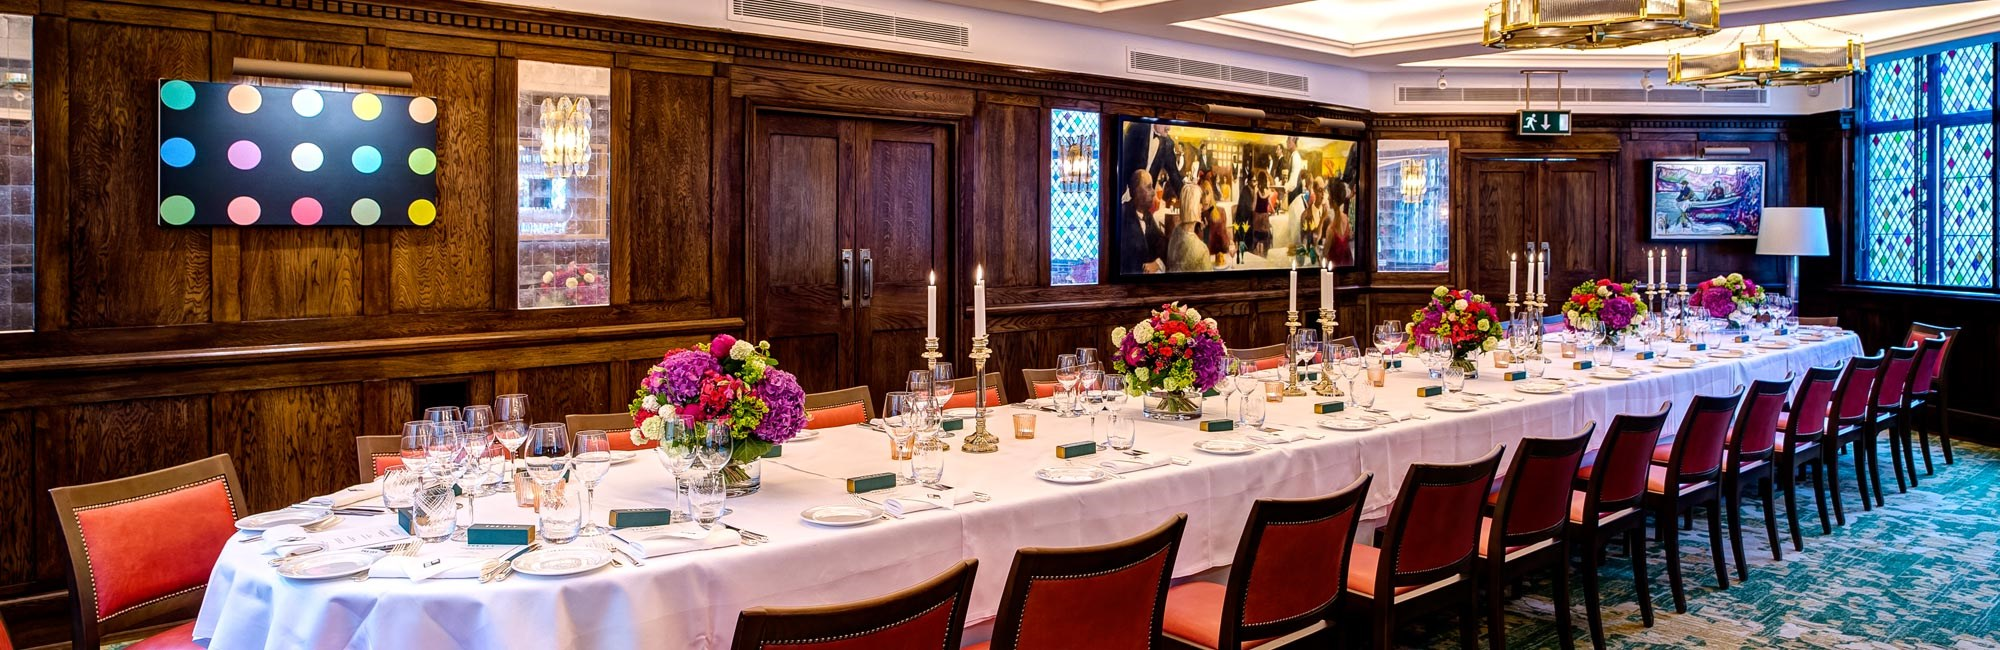 The private dining room at The Ivy in Covent Garden is an ideal venue for Corporate Dinners